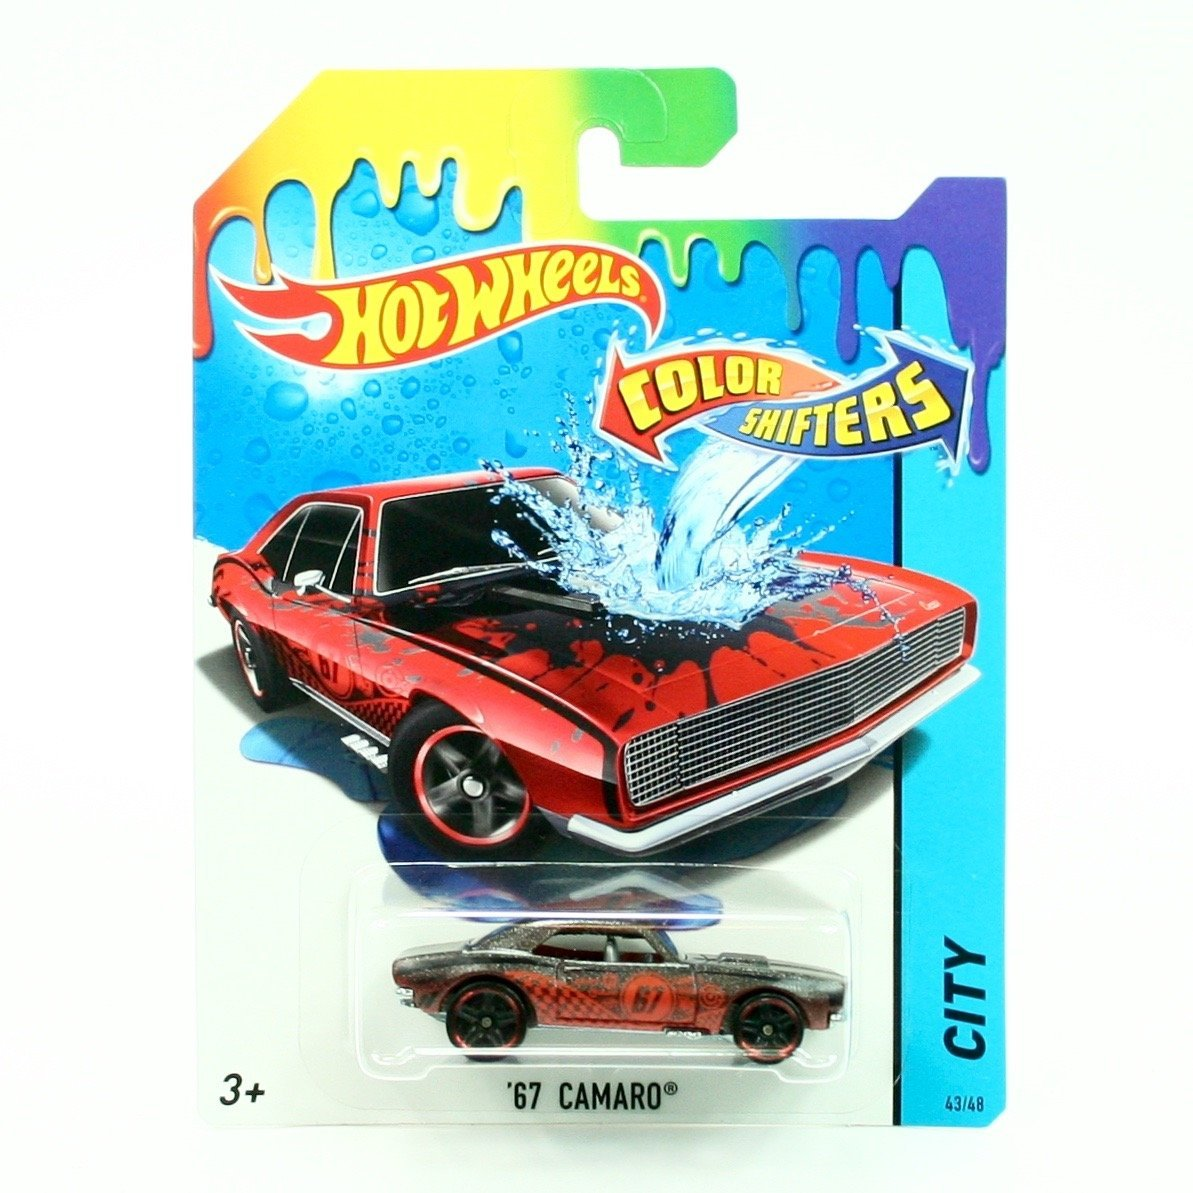 '67 CAMARO * COLOR SHIFTERS * 2015 Hot Wheels City Series 1:64 Scale Vehicle #43/48